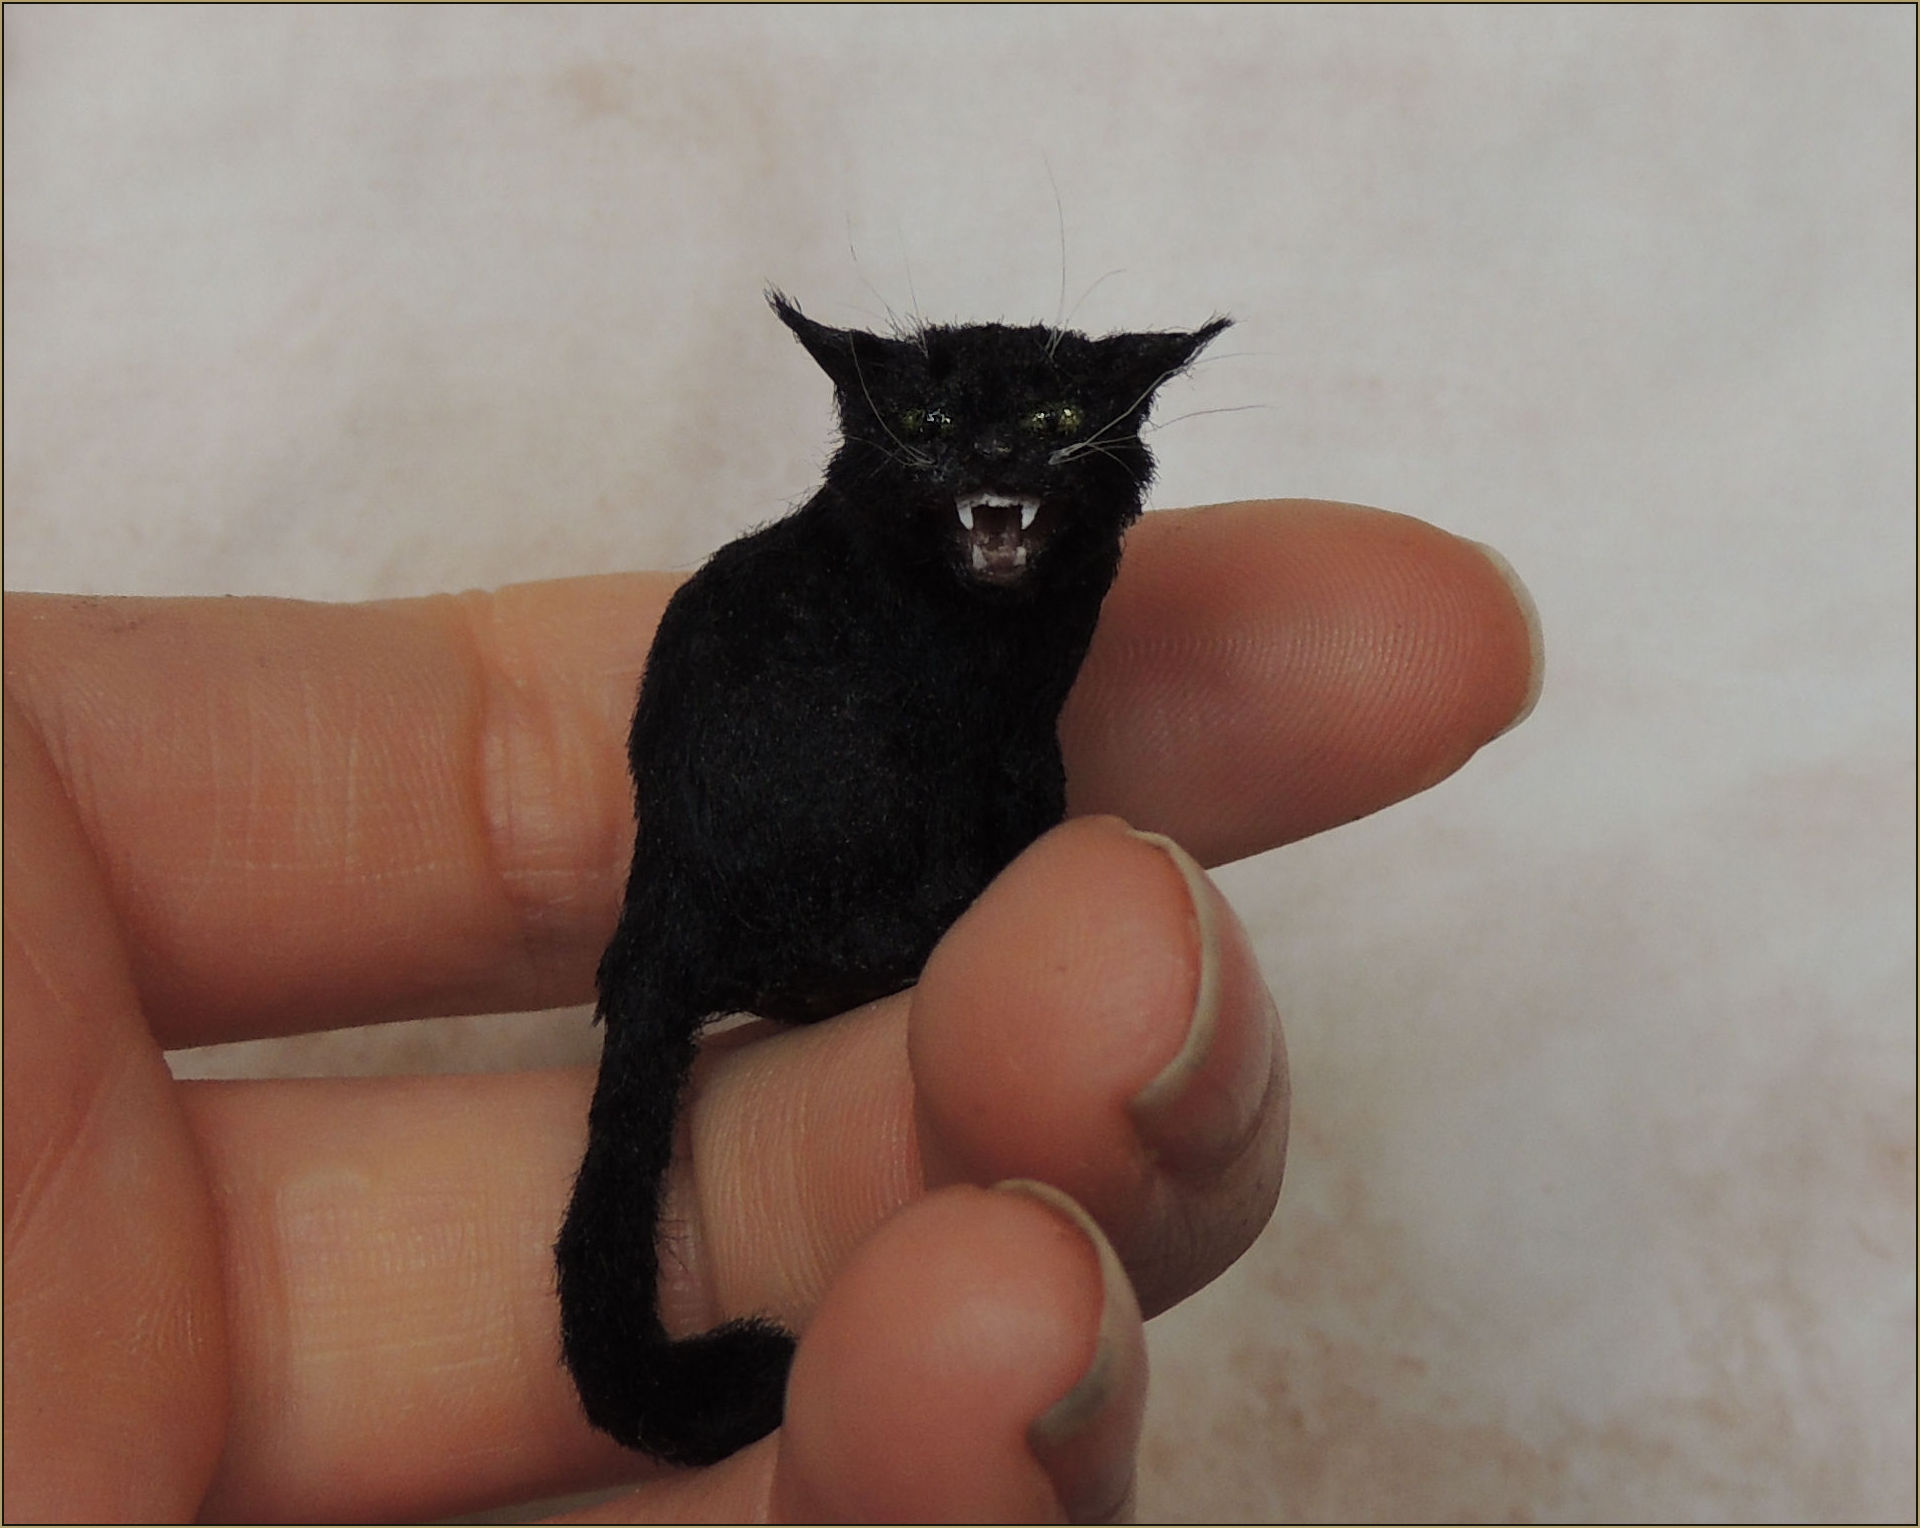 Scale: 1:12th    Medium: Polymer clay mixed media with a coat made of black viscose yarn. The eyes are hand painted.    Dimensions: 2.8 cm from base to the top of the head. 4.8cm Including the length of the tail.    Year: 2015